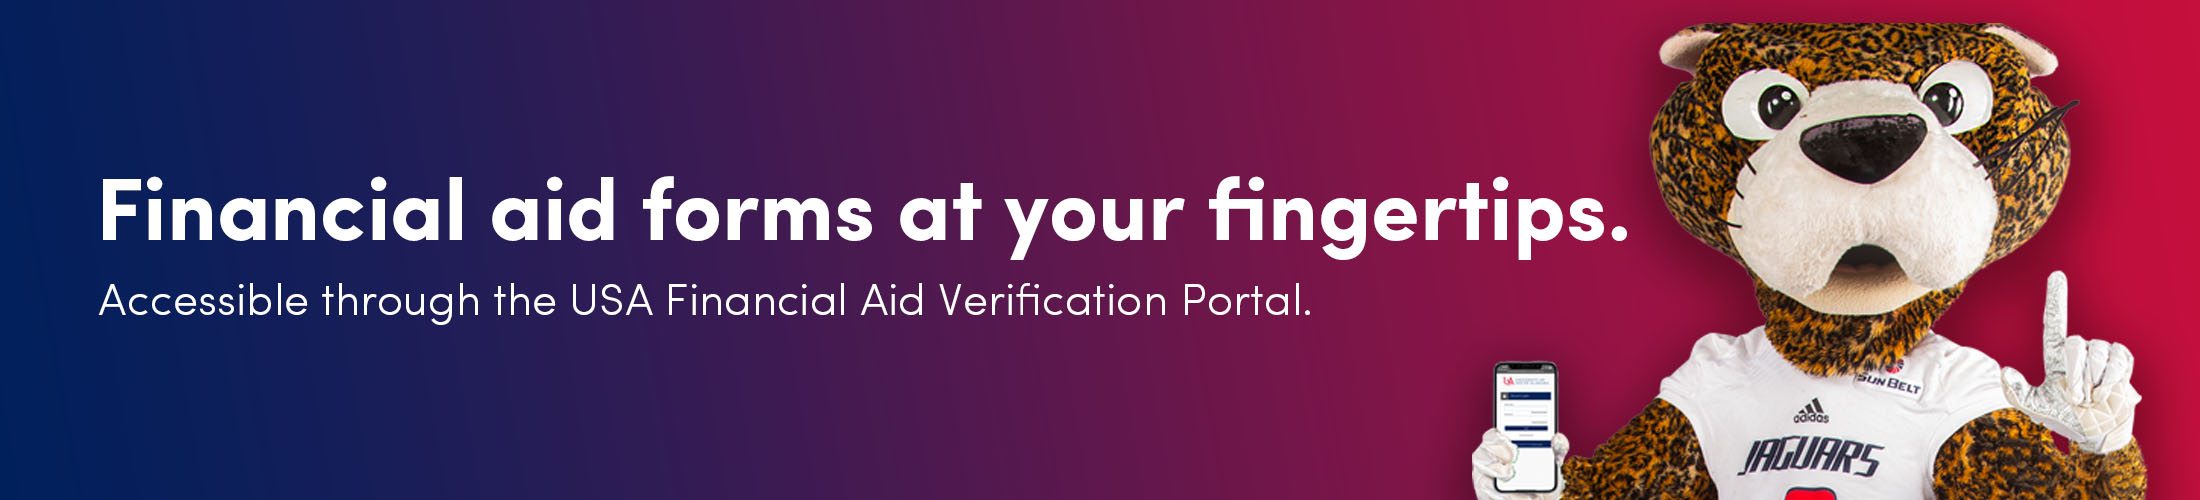 Southpaw with the text Financial aid forms at your fingertips.